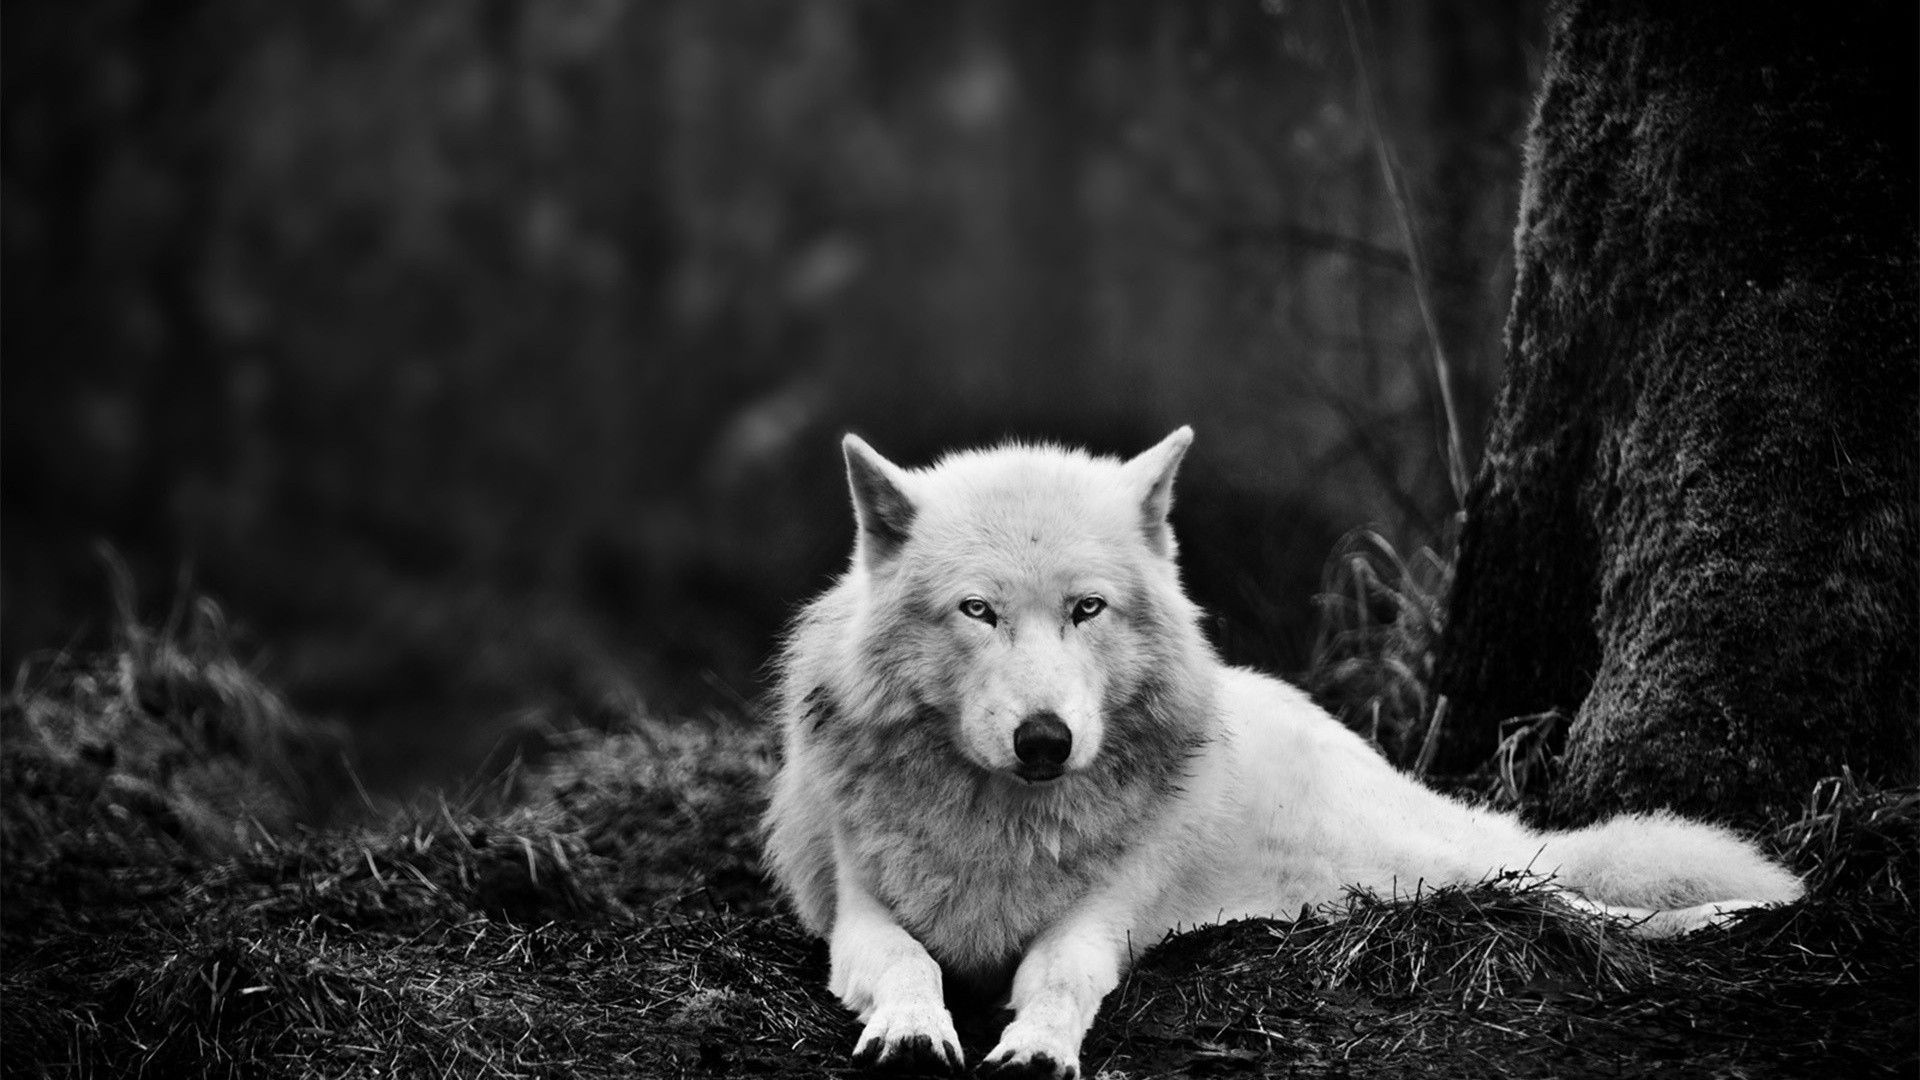 White Wolfwallpaper Wolf Wallpaper EZ Wolves Pinterest Wolves, Wallpapers and 1920x1080